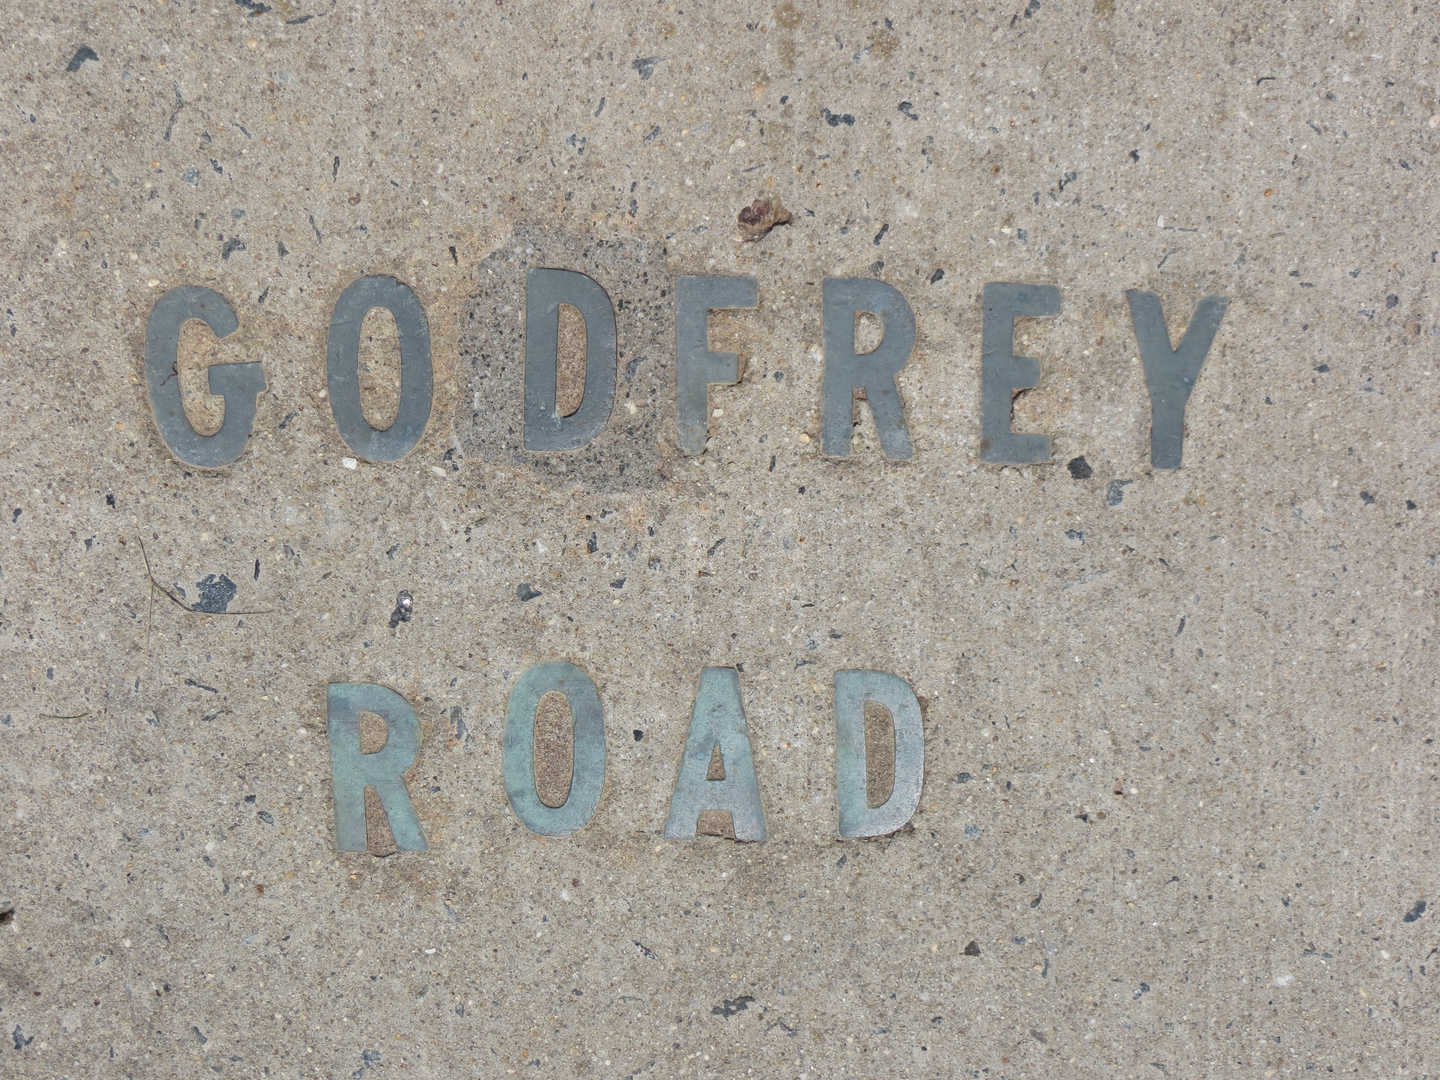 Bronze letters inserted into the sidewalk spelling out Godfrey Road at the southwest intersection of Godfrey and Edgemont Roads. May 2013.